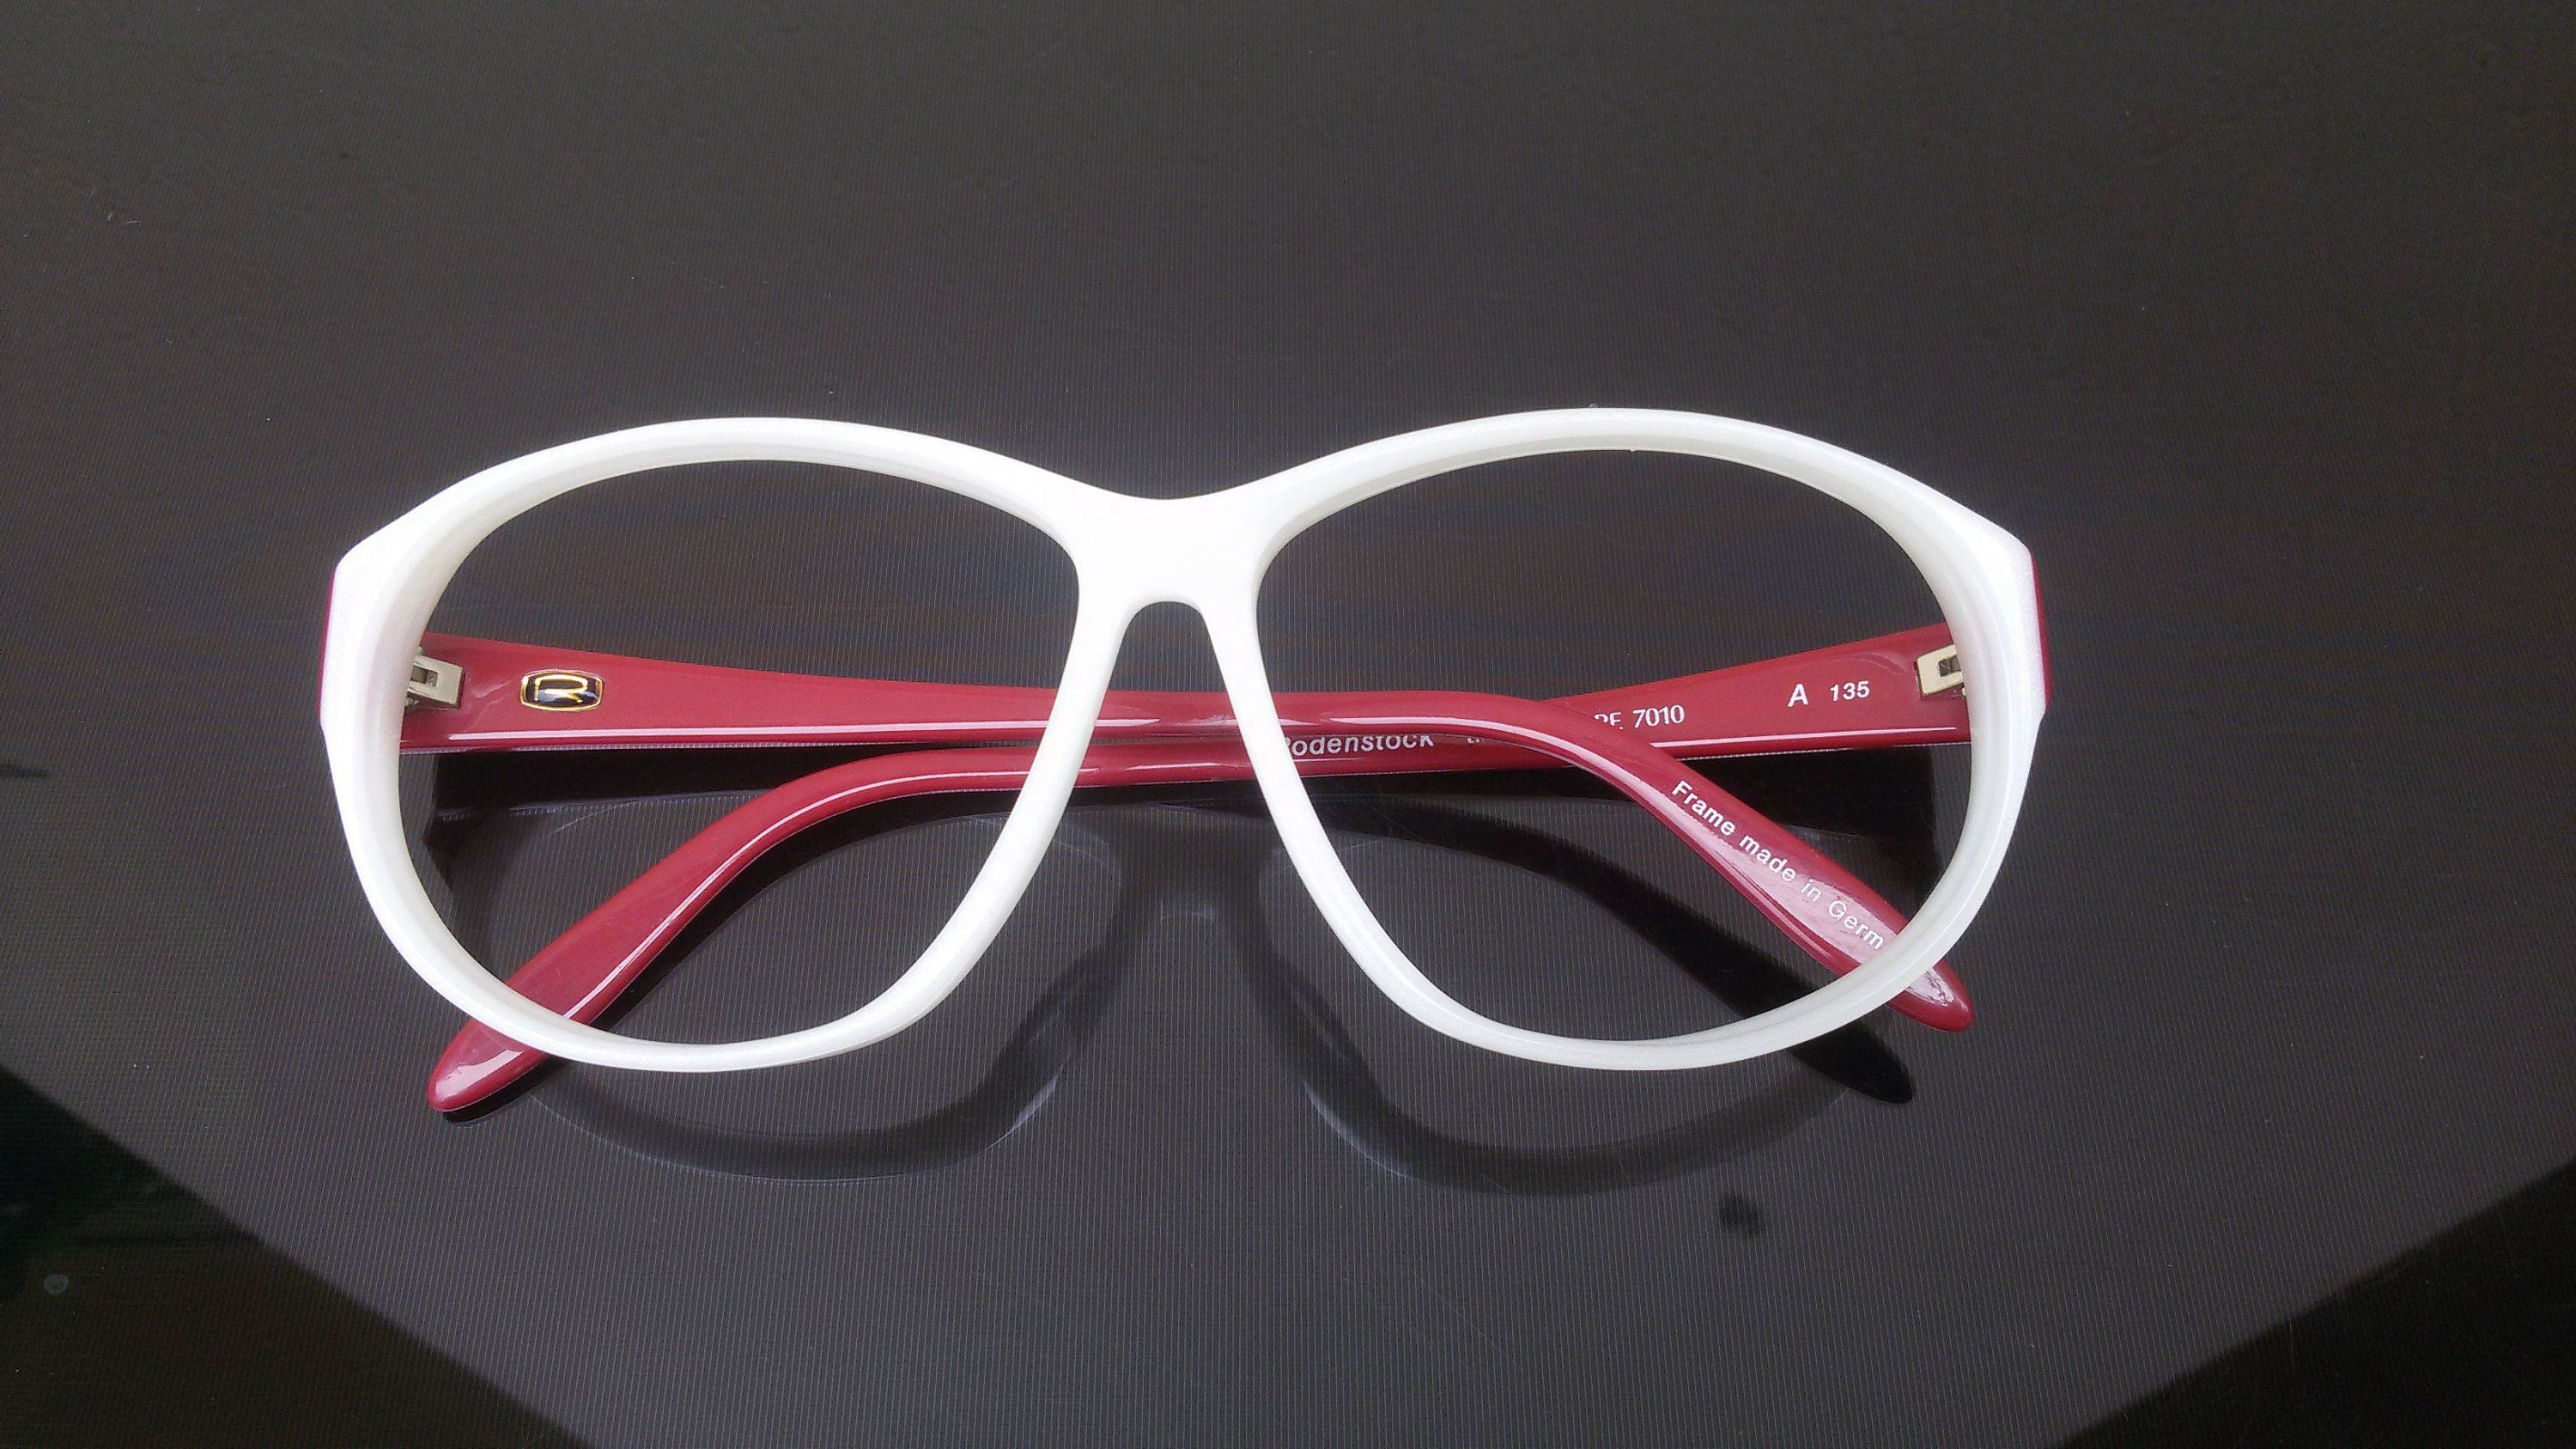 7ce2da241f €51 Great quality eyeglasses by Rodenstock from the 80 s. To the present  day this piece is in perfect condition as it were new. Shiny white front  with red ...